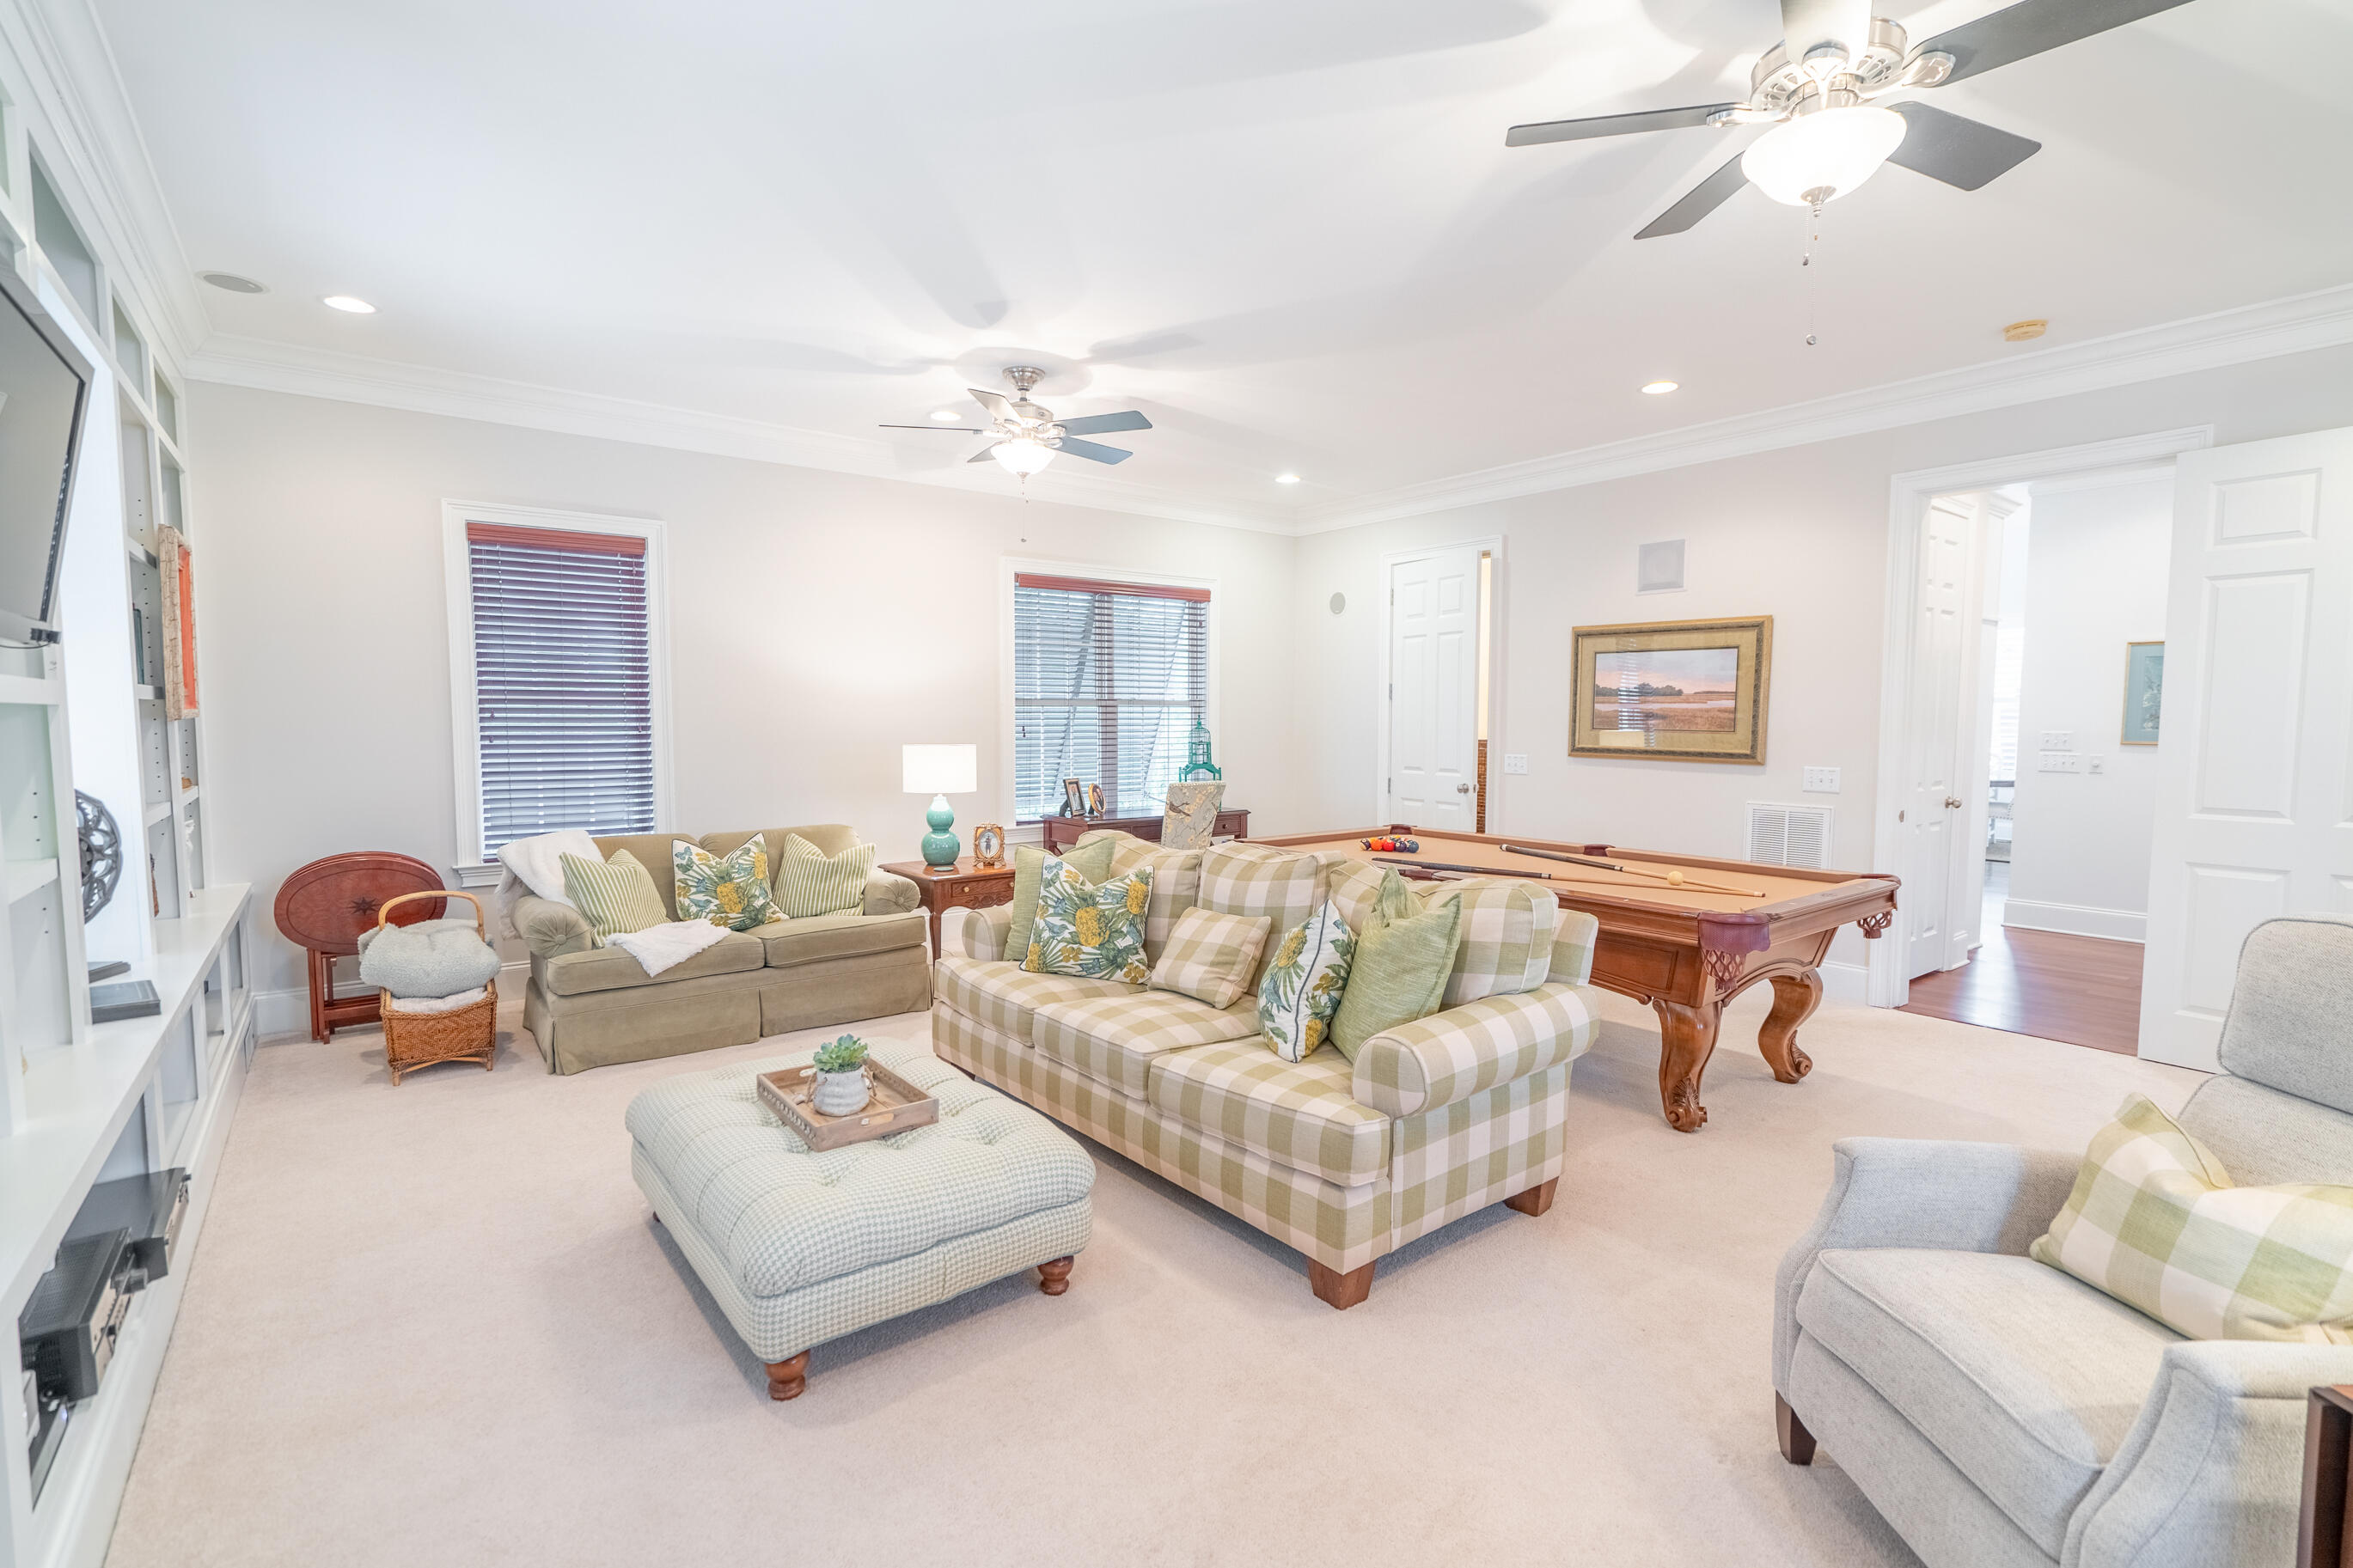 Dunes West Homes For Sale - 1505 Spring Line, Mount Pleasant, SC - 13